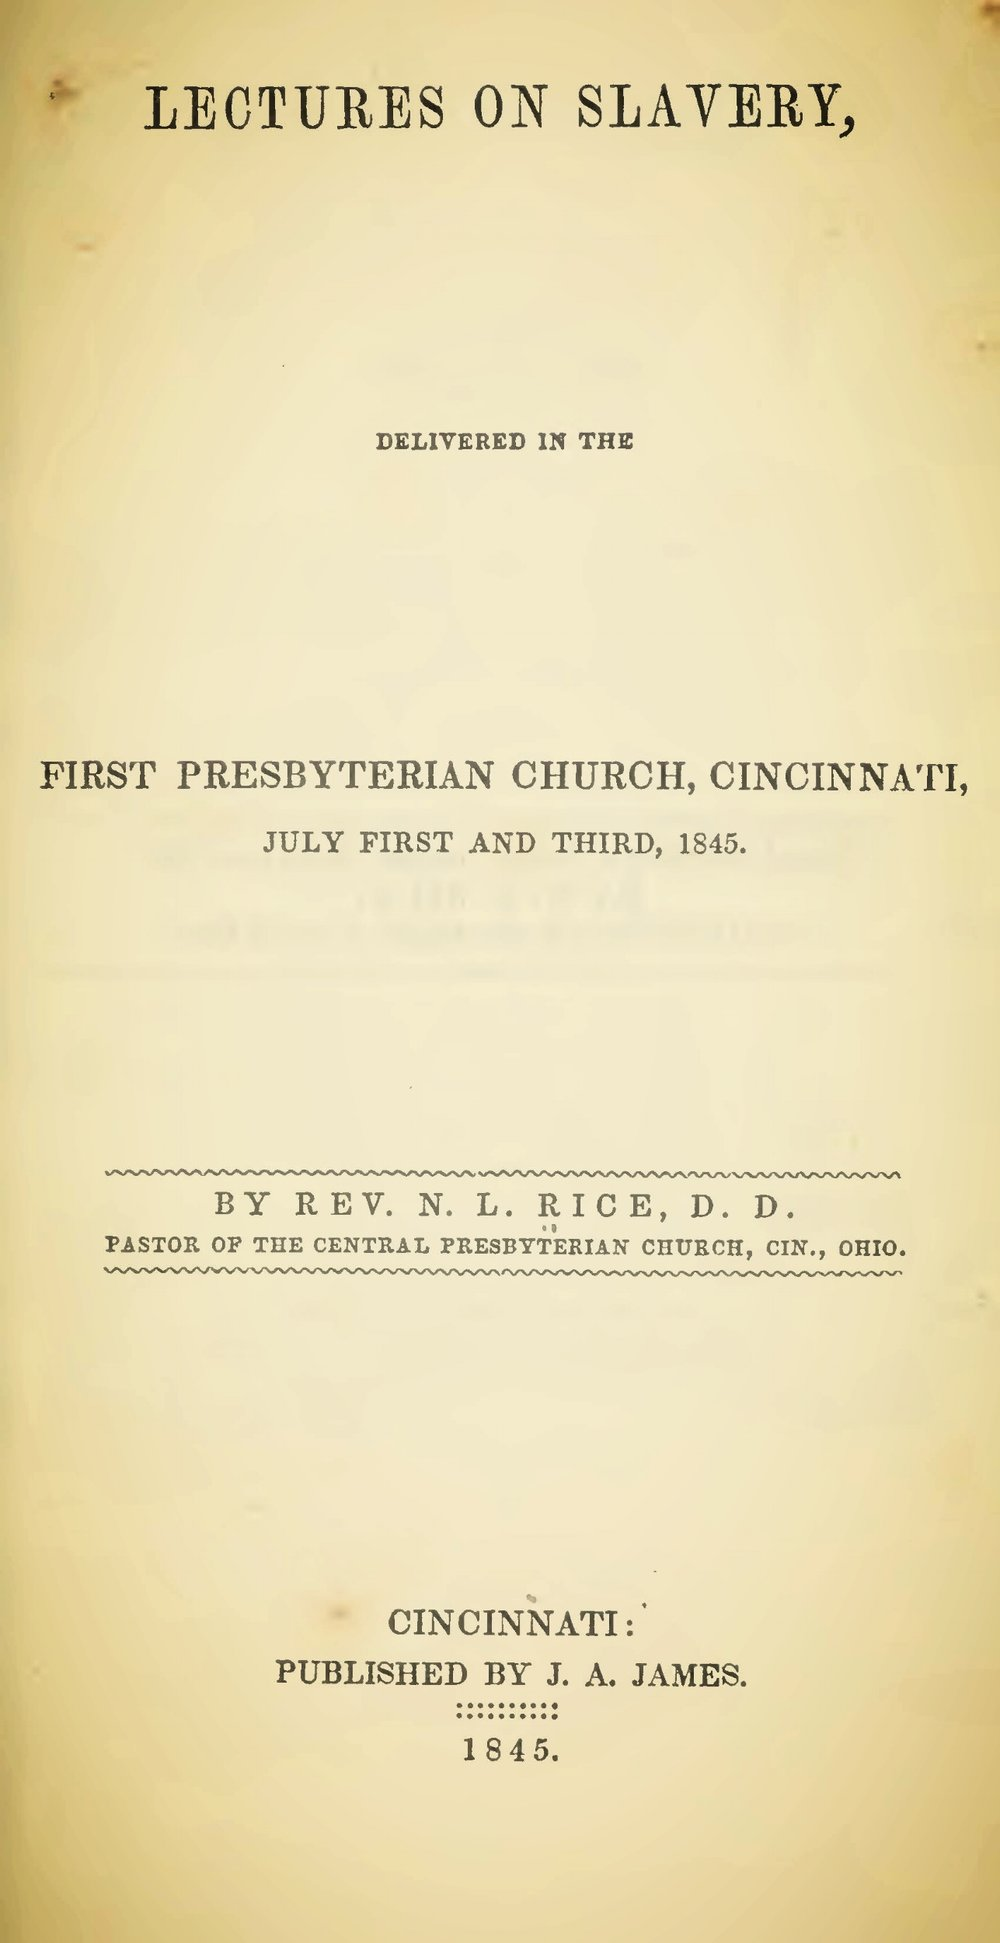 Rice, Nathan Lewis, Lectures on Slavery, Cincinnati Title Page.jpg